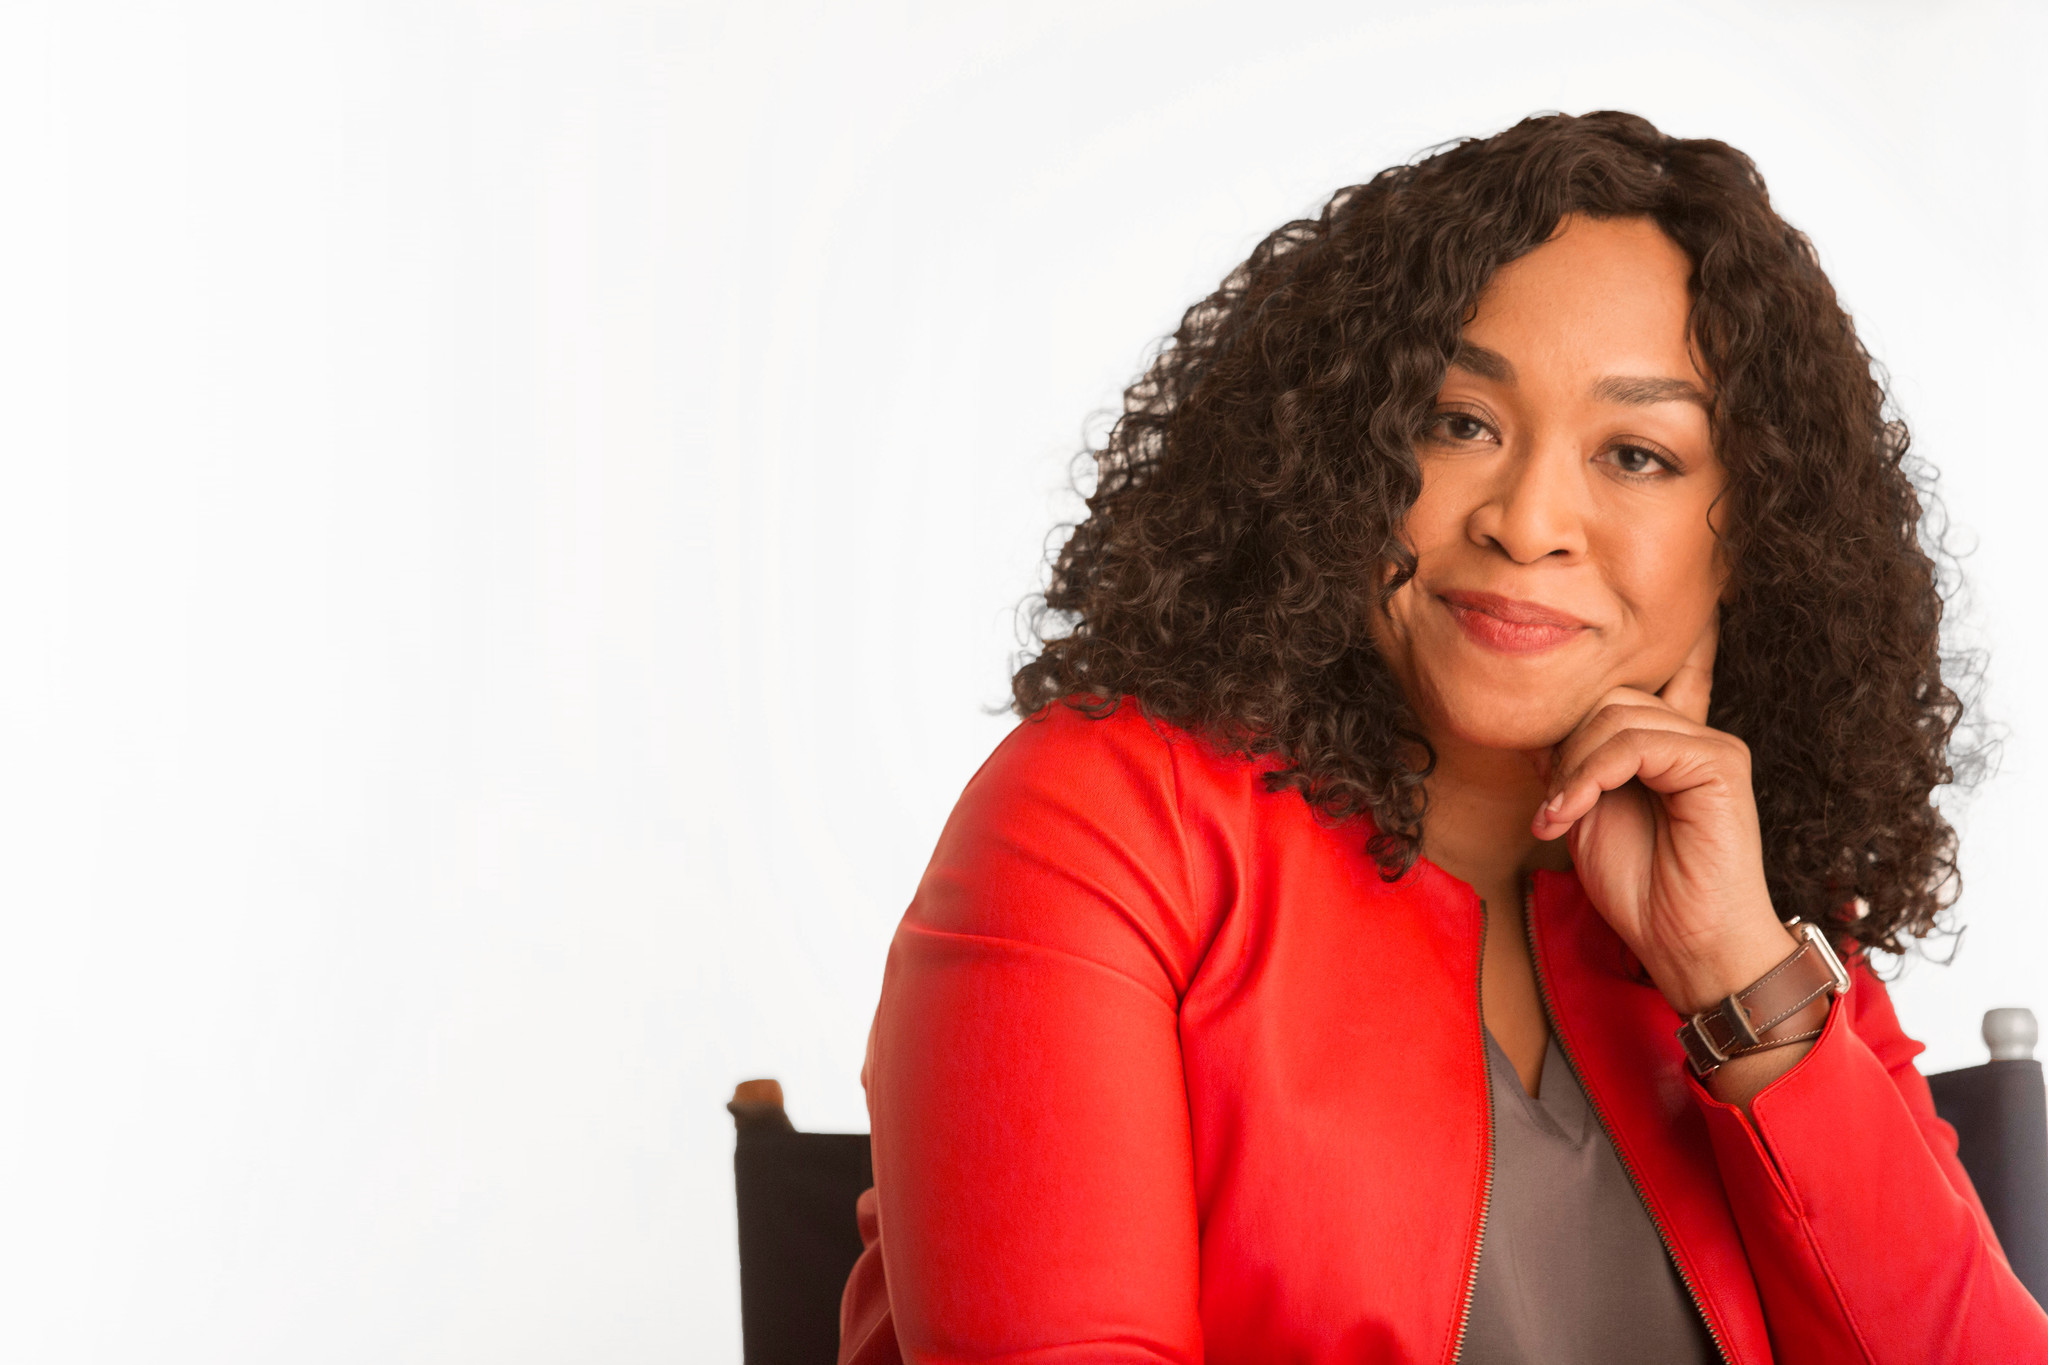 Dove teams up with Shonda Rhimes on Real Beauty campaign